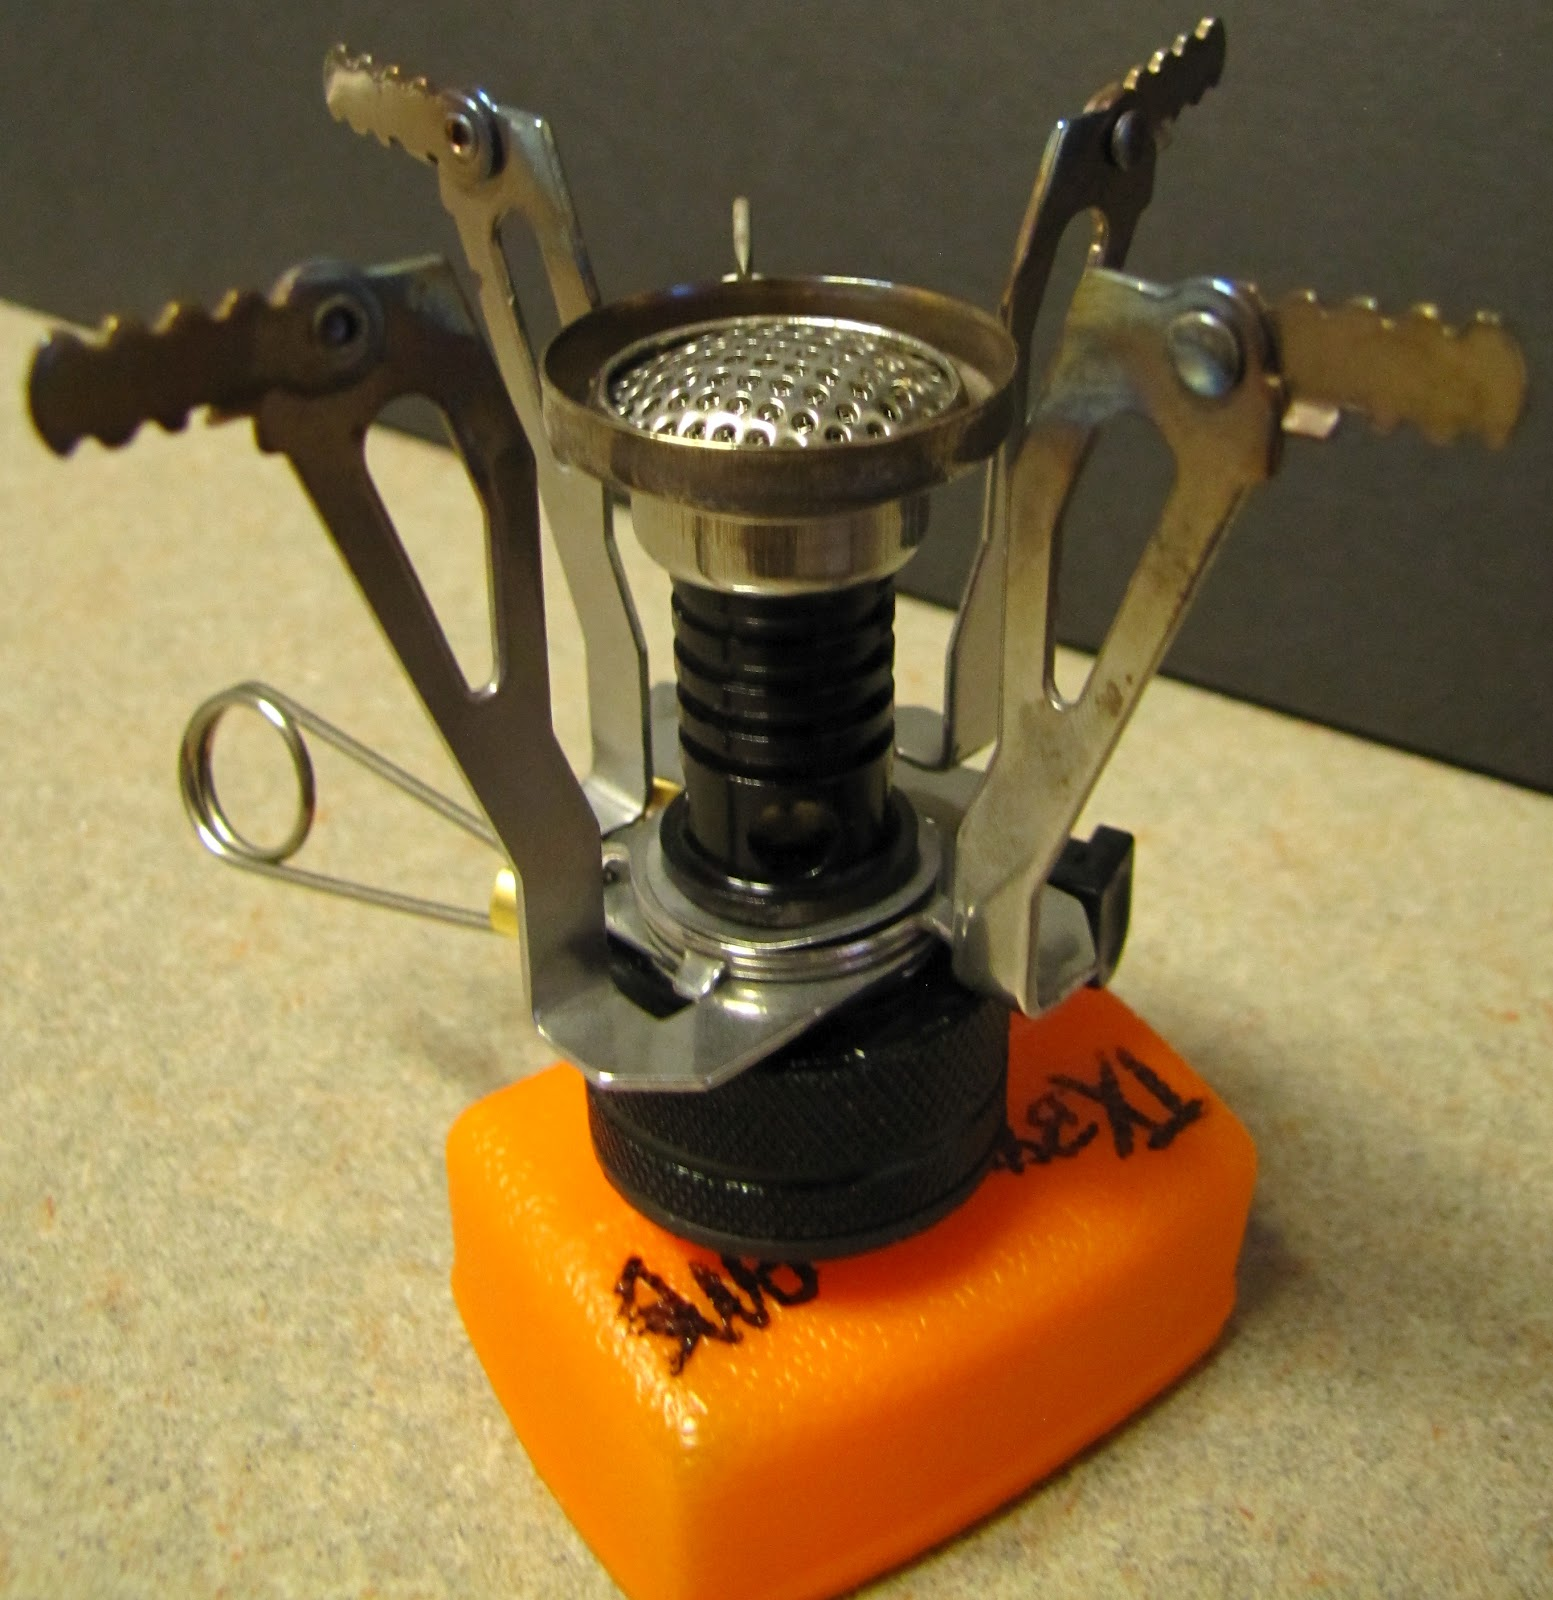 Thrifty Gear Reviews: Stove Review: Ultralight Backpacking